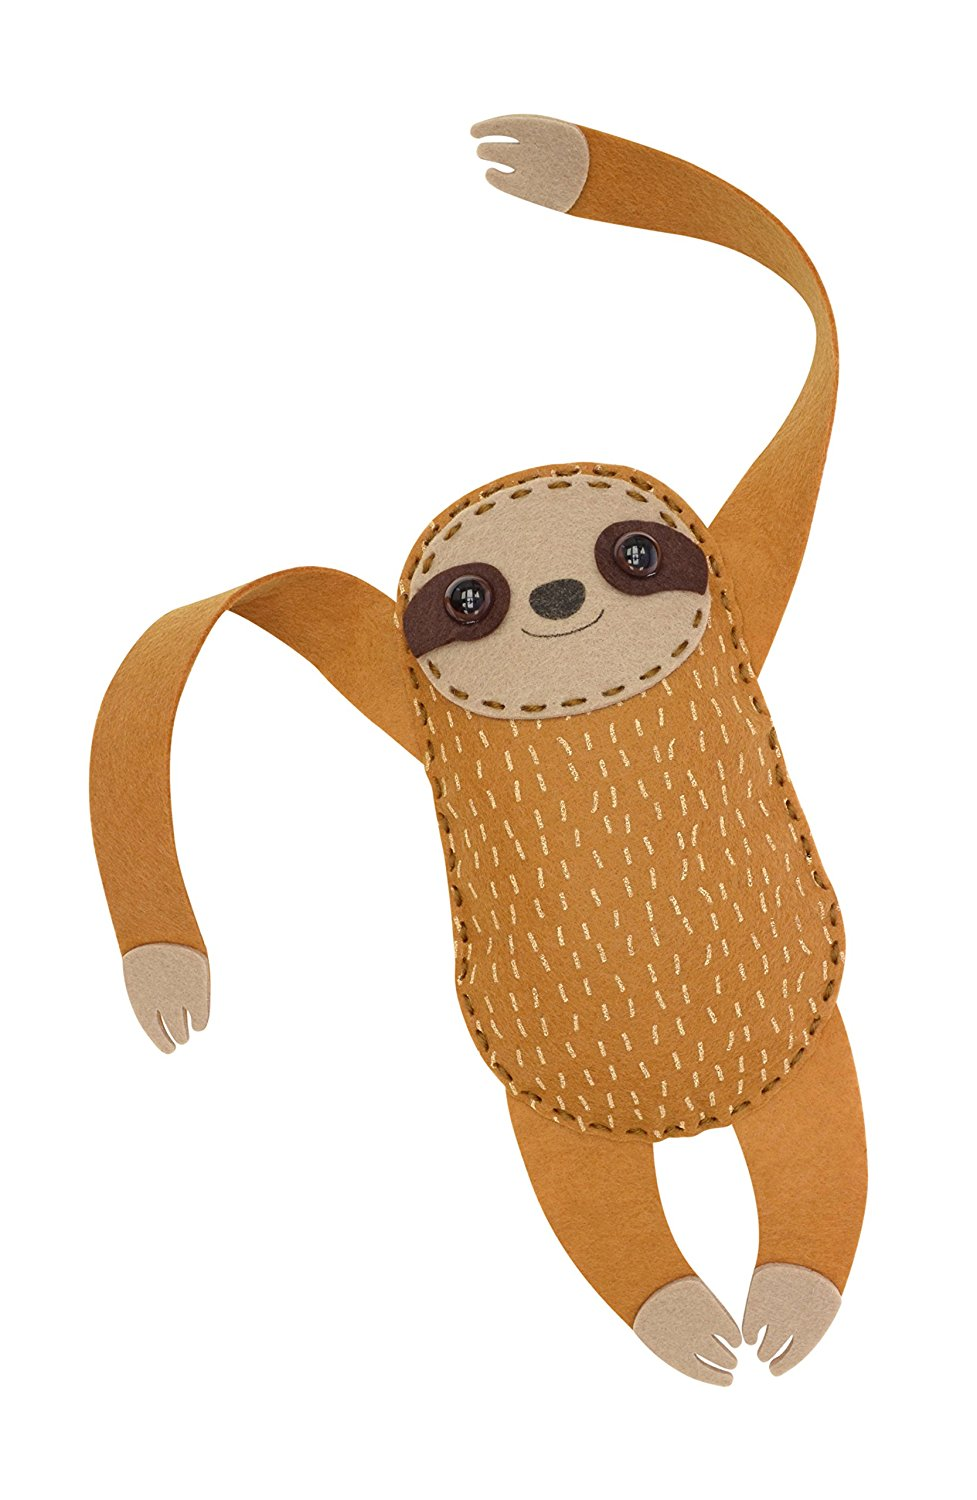 Natural History Museum - Sew Your Own Hanging Sloth Kit - Contents